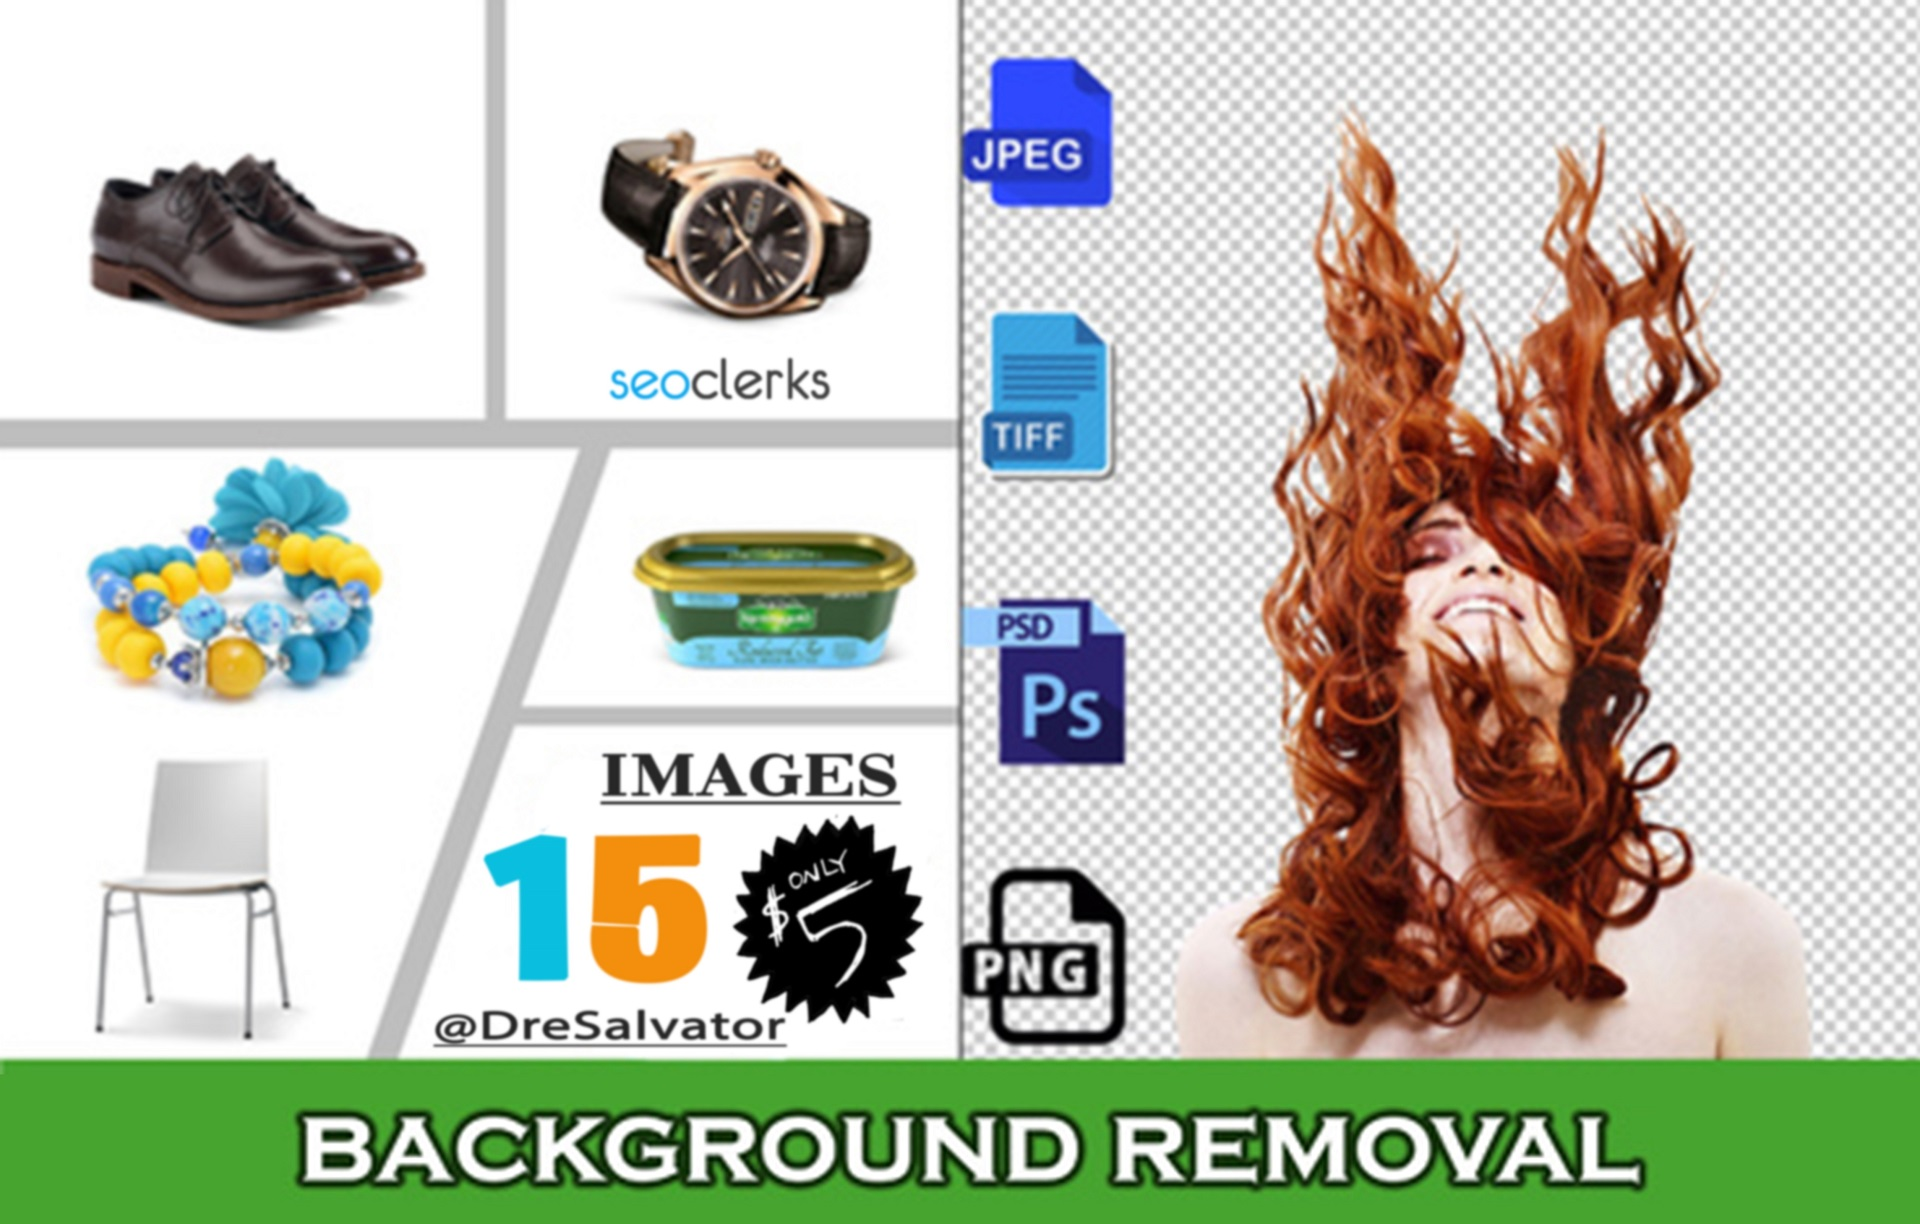 I Will Do 15 Background Removal On Your Images. Fast Delivery